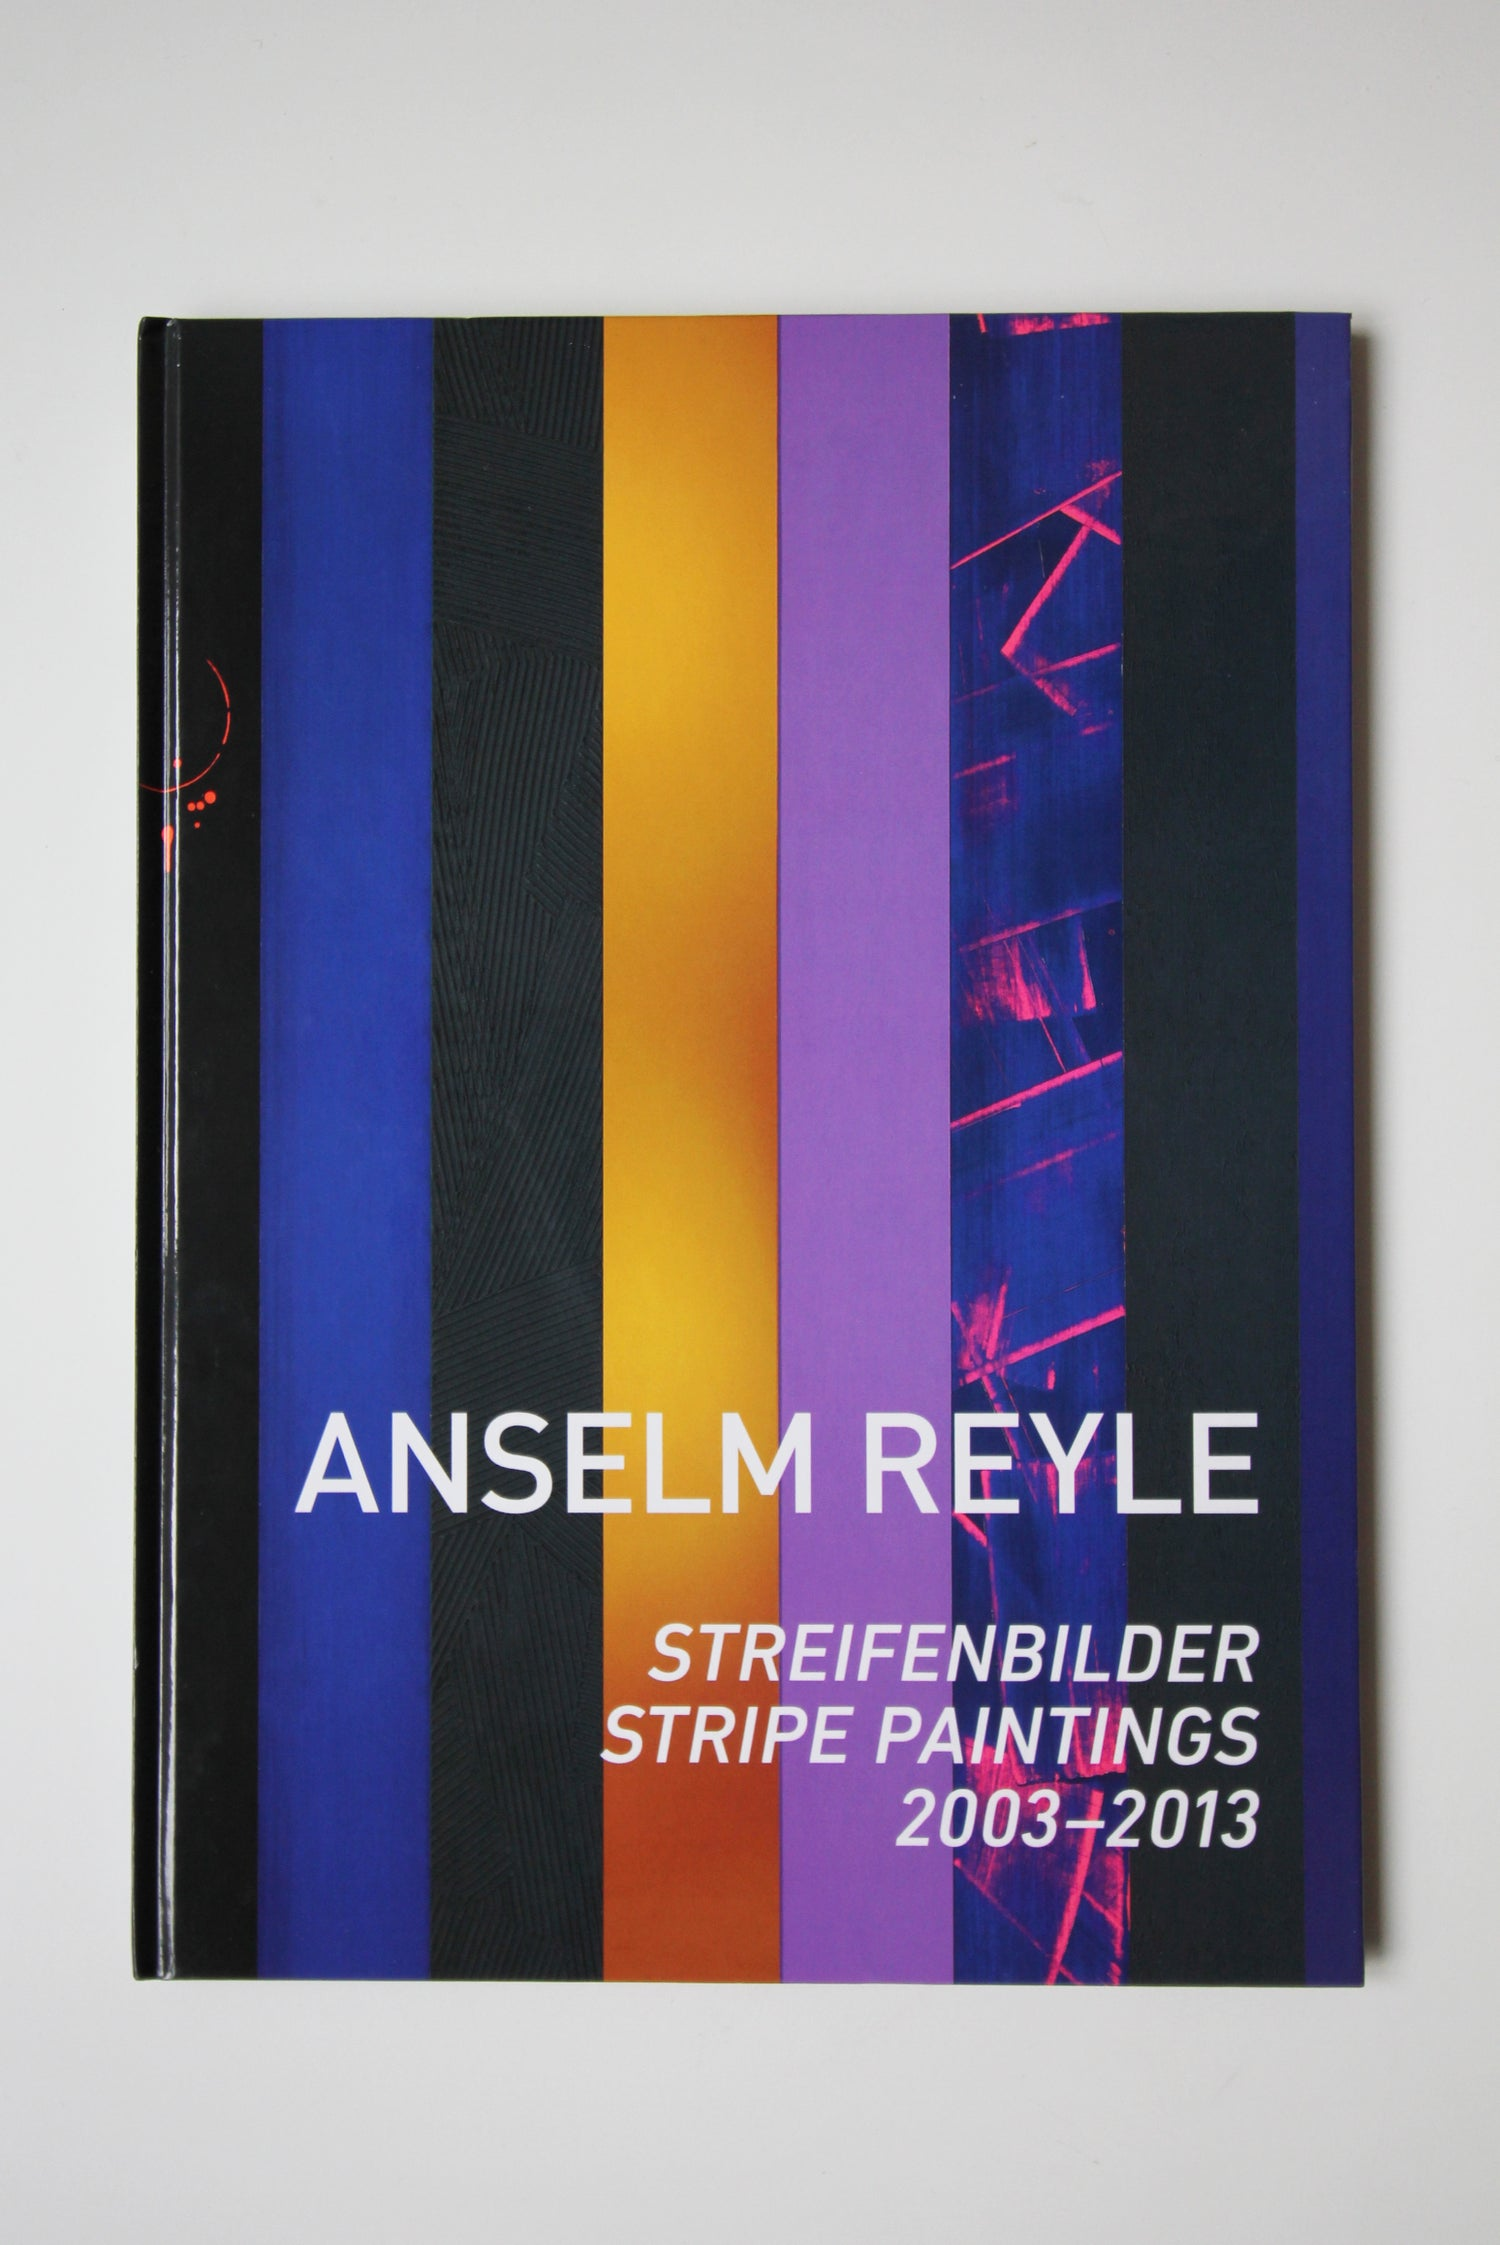 Image of Anselm Reyle - Streifenbilder / Stripe Paintings 2003-2013